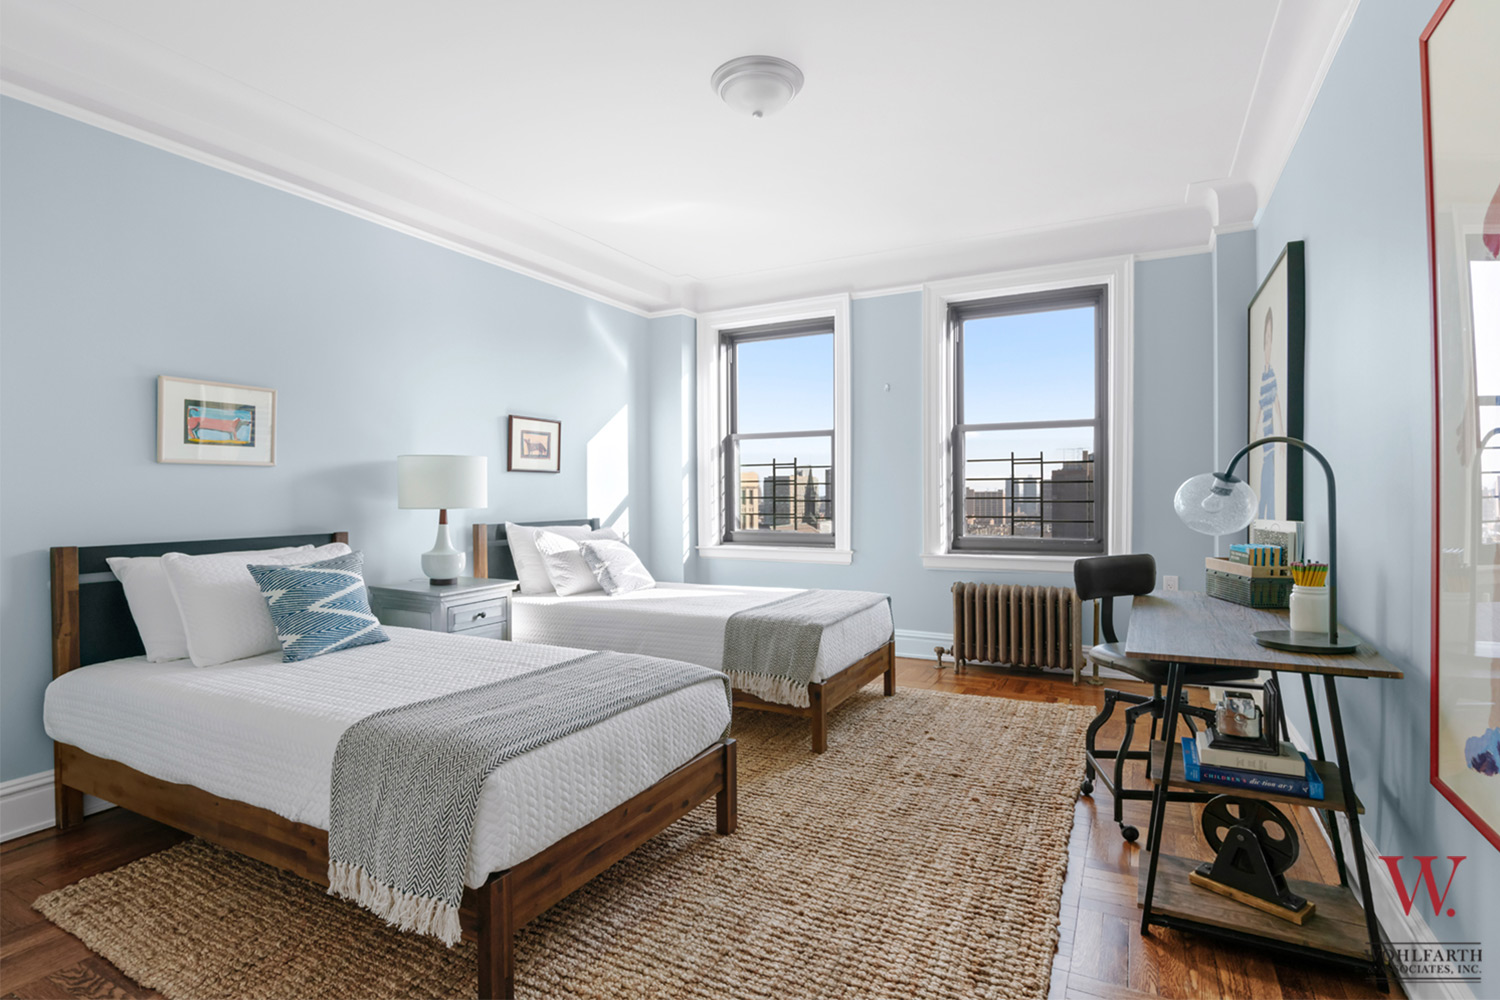 300-Wes-108th-Street-14A—Bed-2